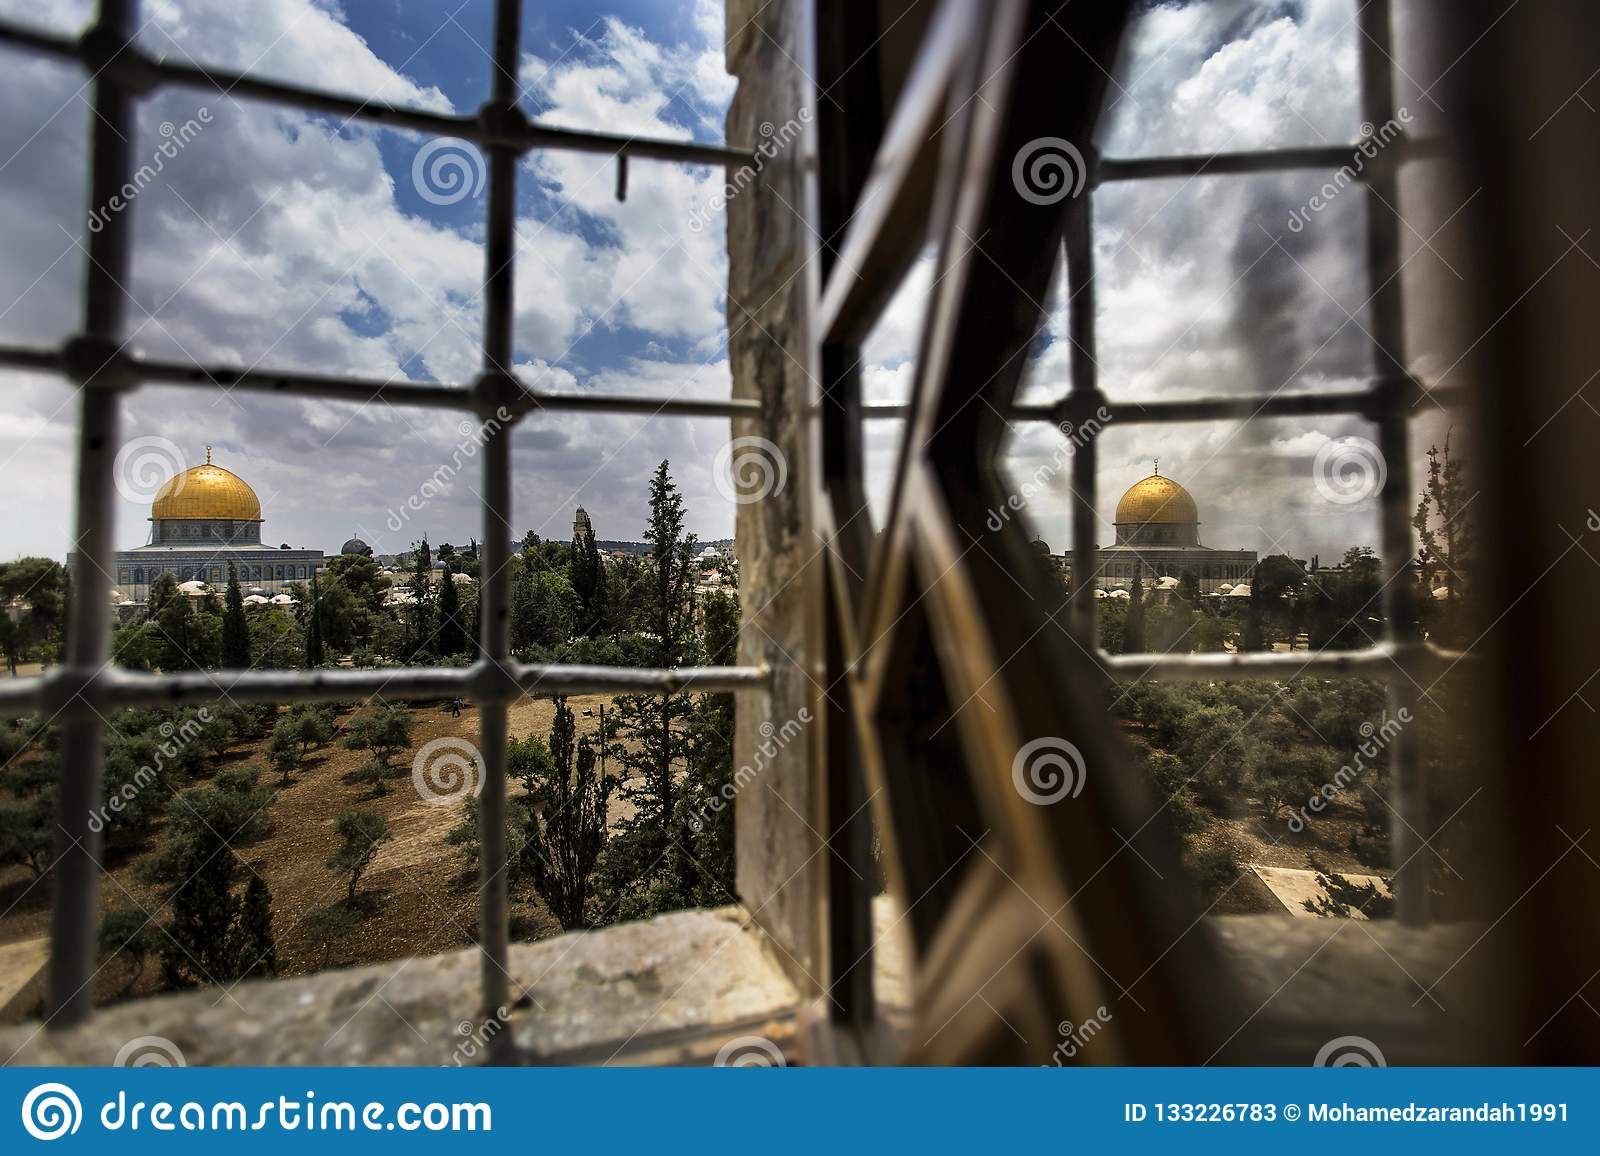 Reflection of the dome of the rock on the window